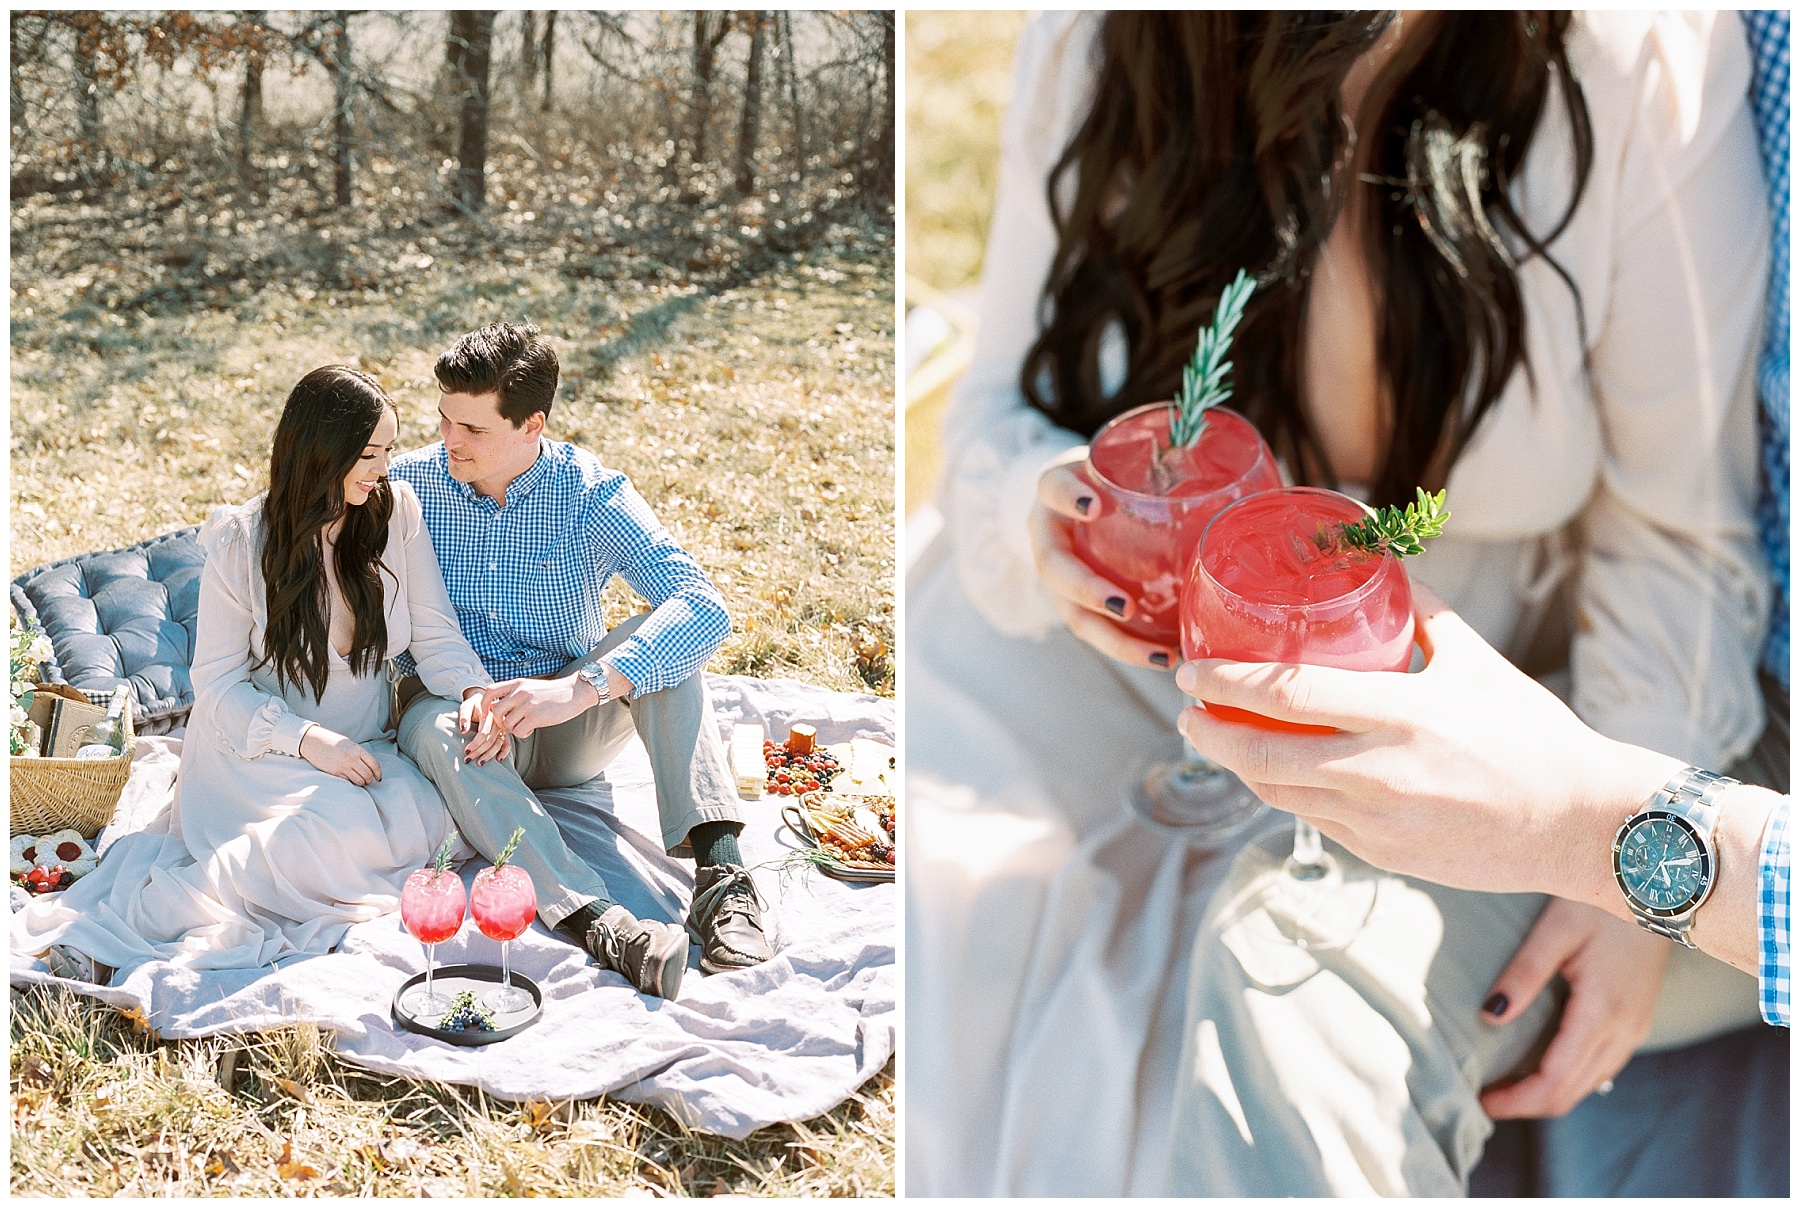 Late Fall Farm-to-table Inspired Brunch Picnic Engagement Session During Wedding Weekend by Kelsi Kliethermes Photography Best Missouri and Maui Wedding Photographer_0014.jpg